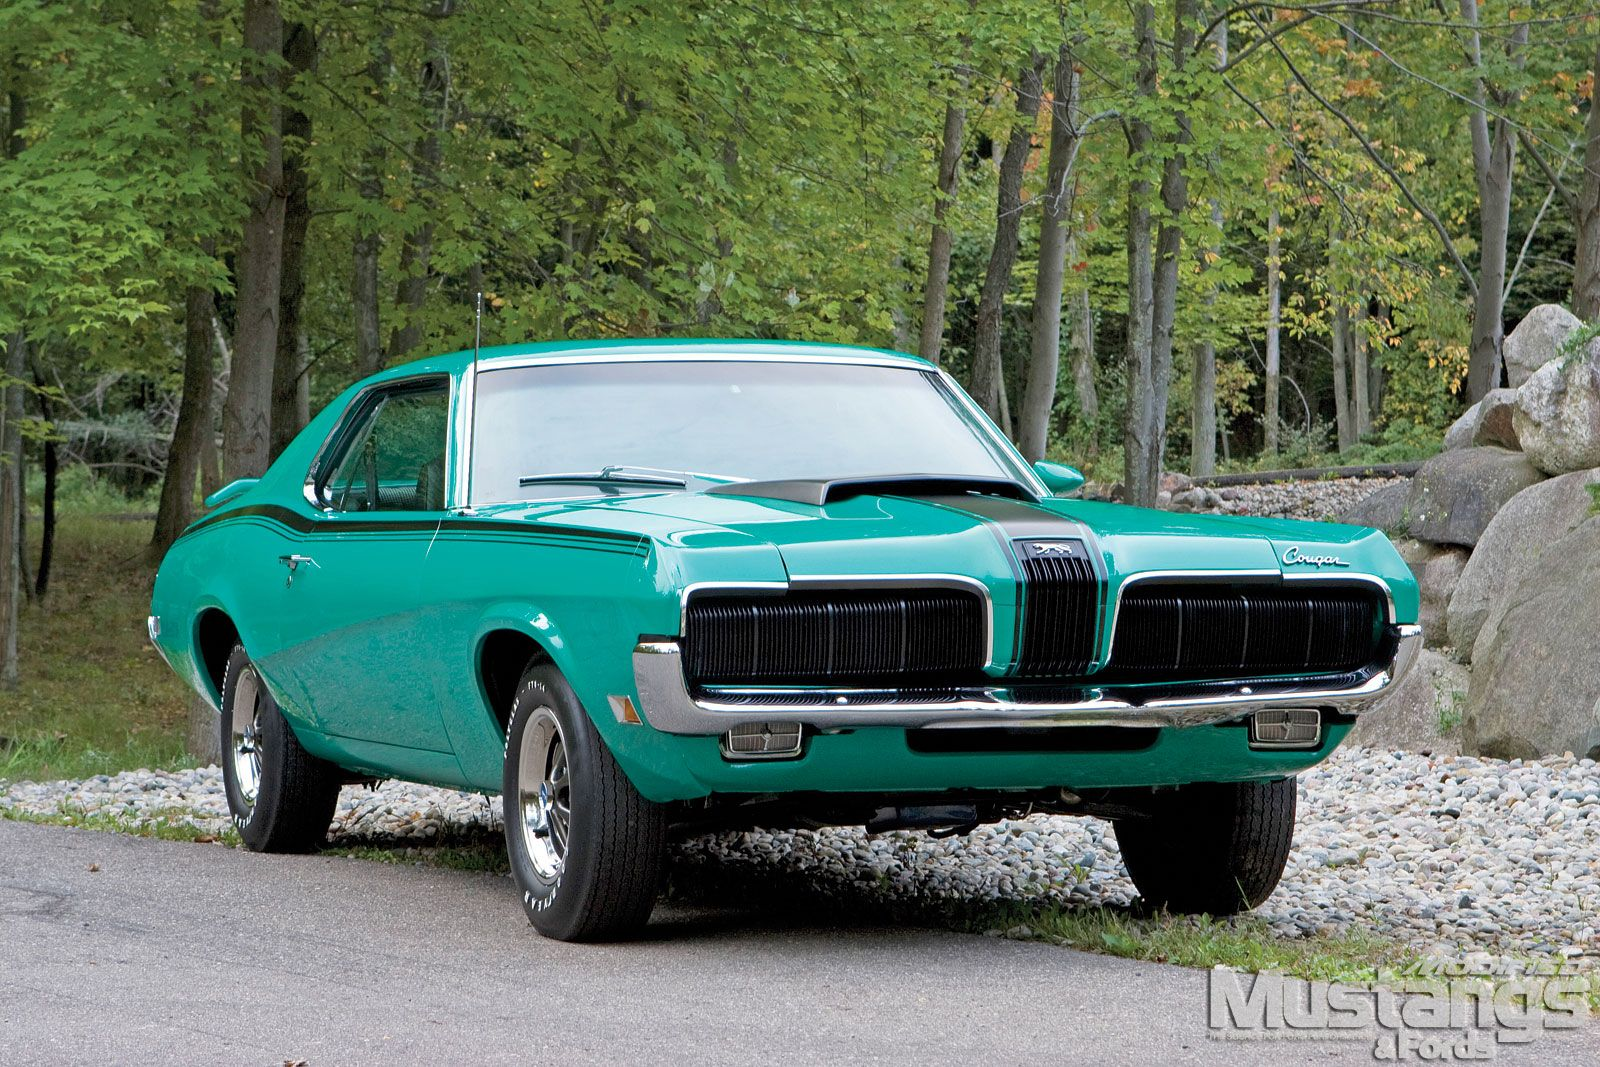 1970 Mercury Cougar I Like This Car But Want A Muscle In